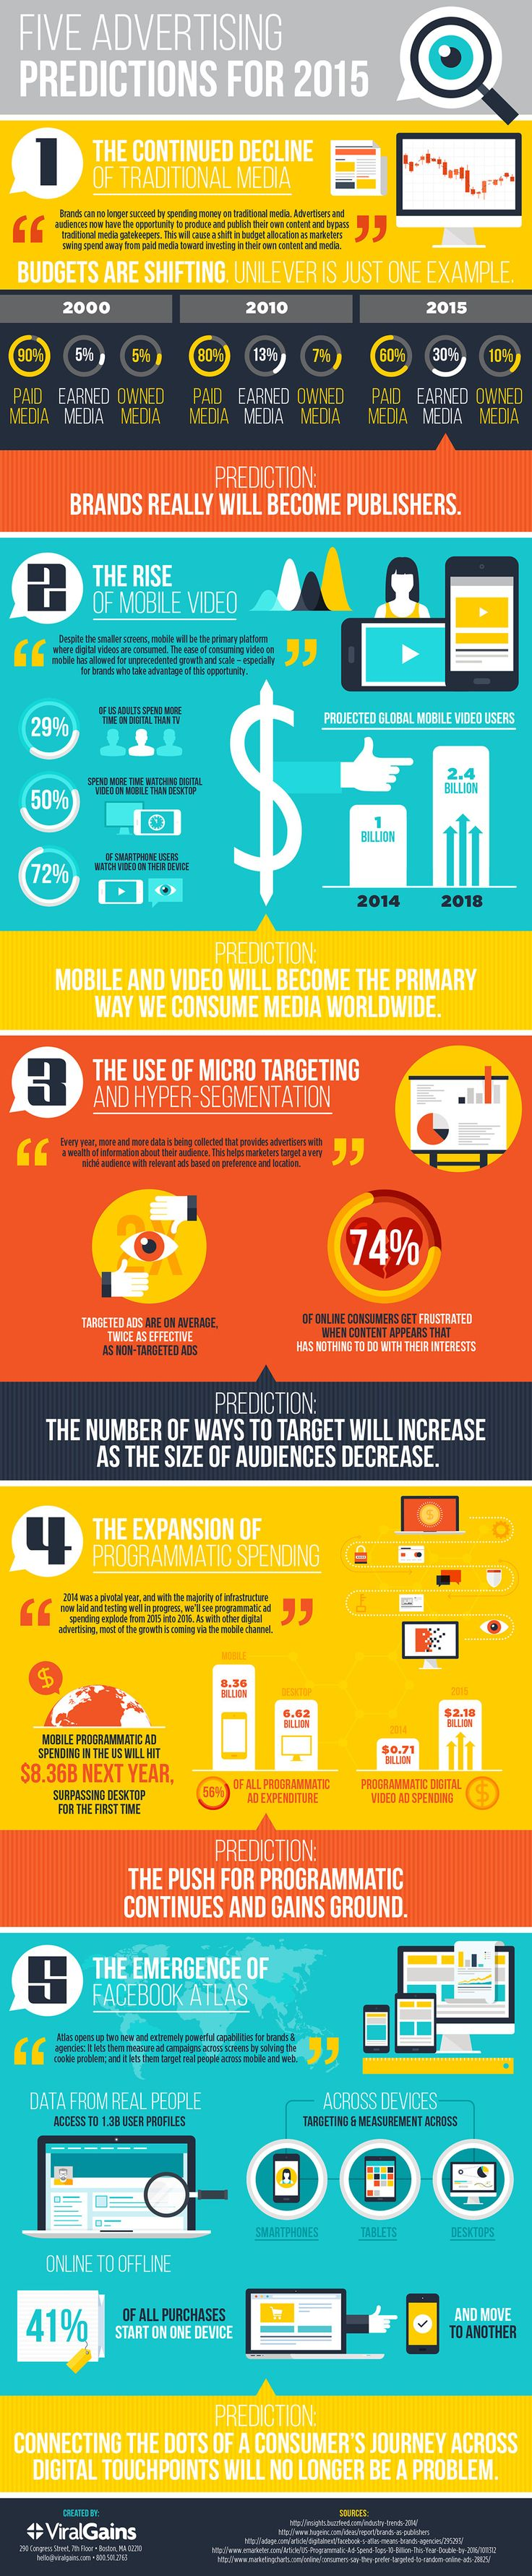 5 Advertising Predictions for 2015 - #Infographic #socialmedia